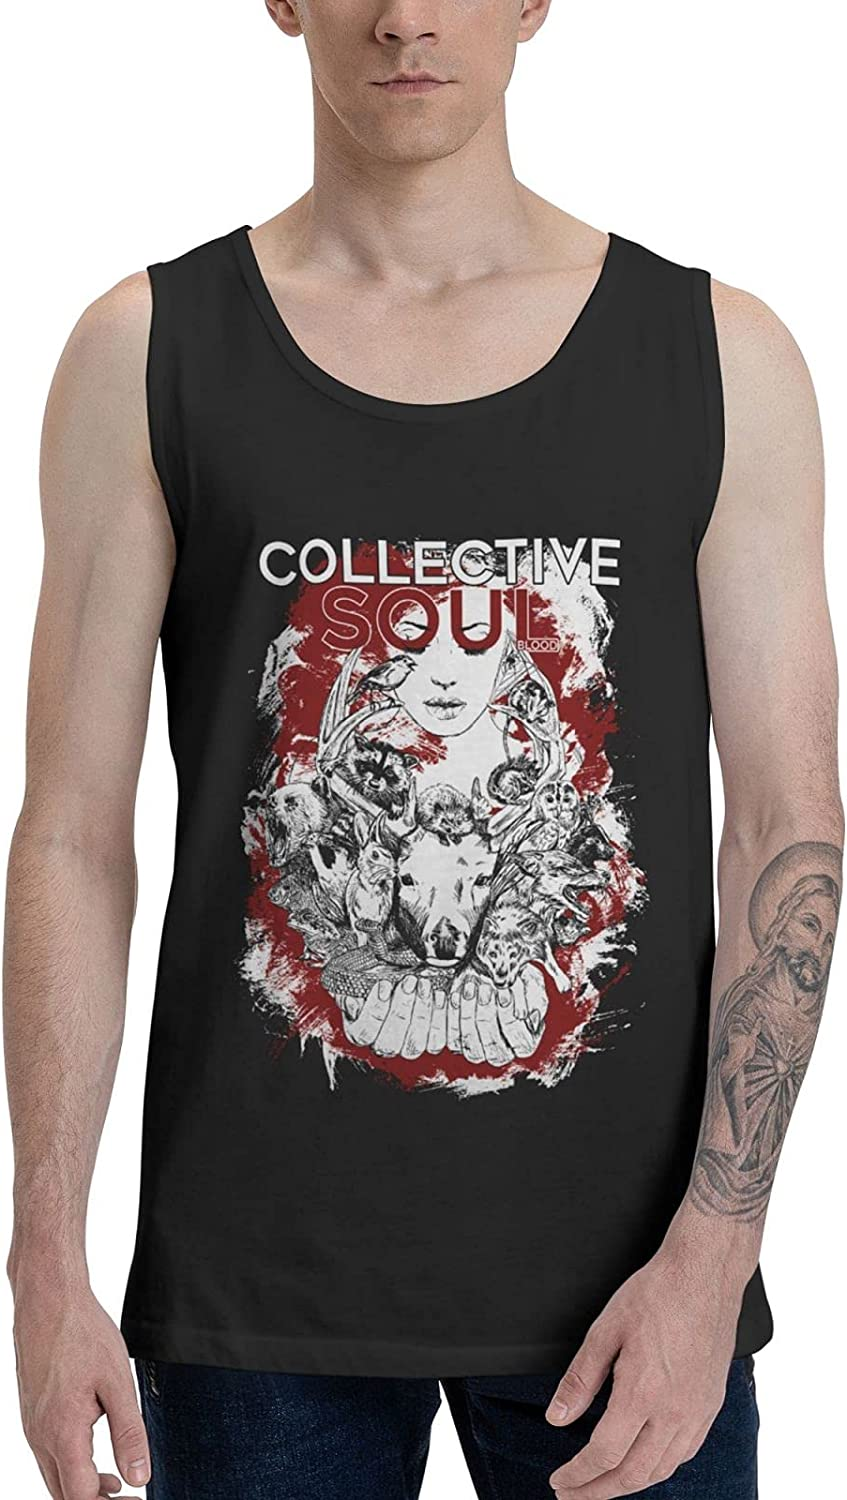 Collective Soul Tank Top Men's Summer Sleeveless Clothes Stylish Vest